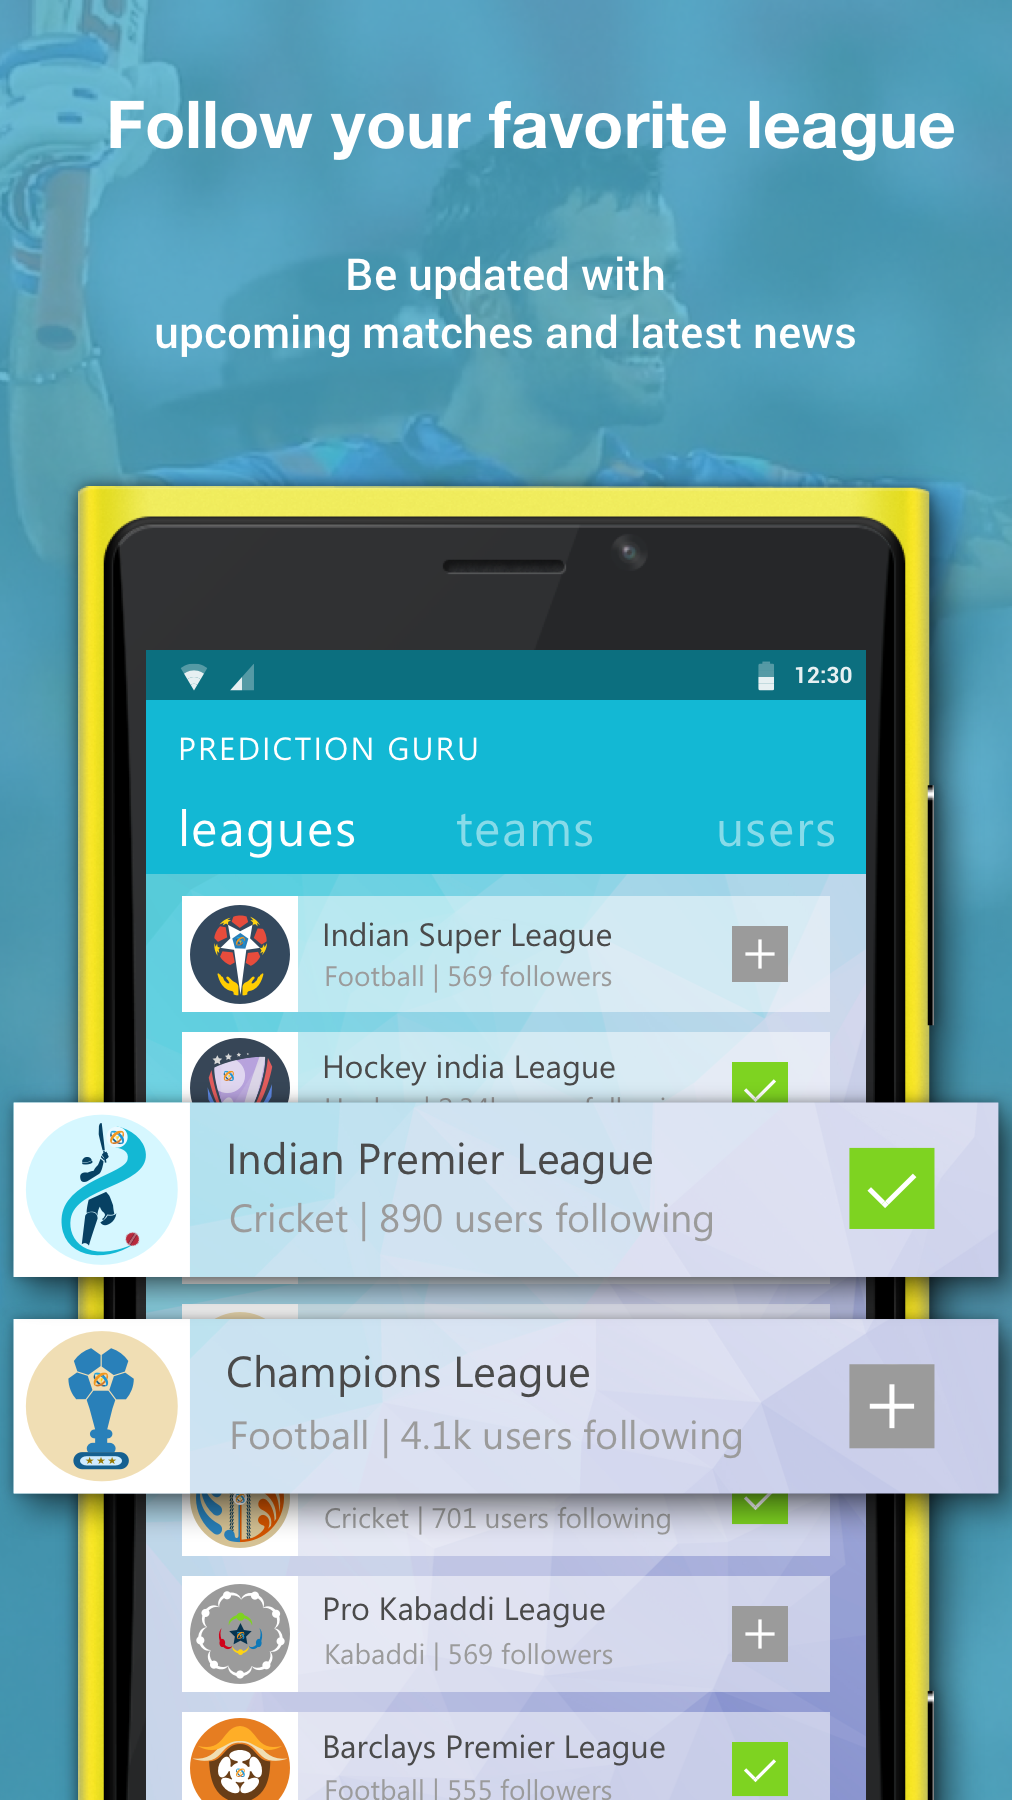 Follow your favorite league. Be updated with